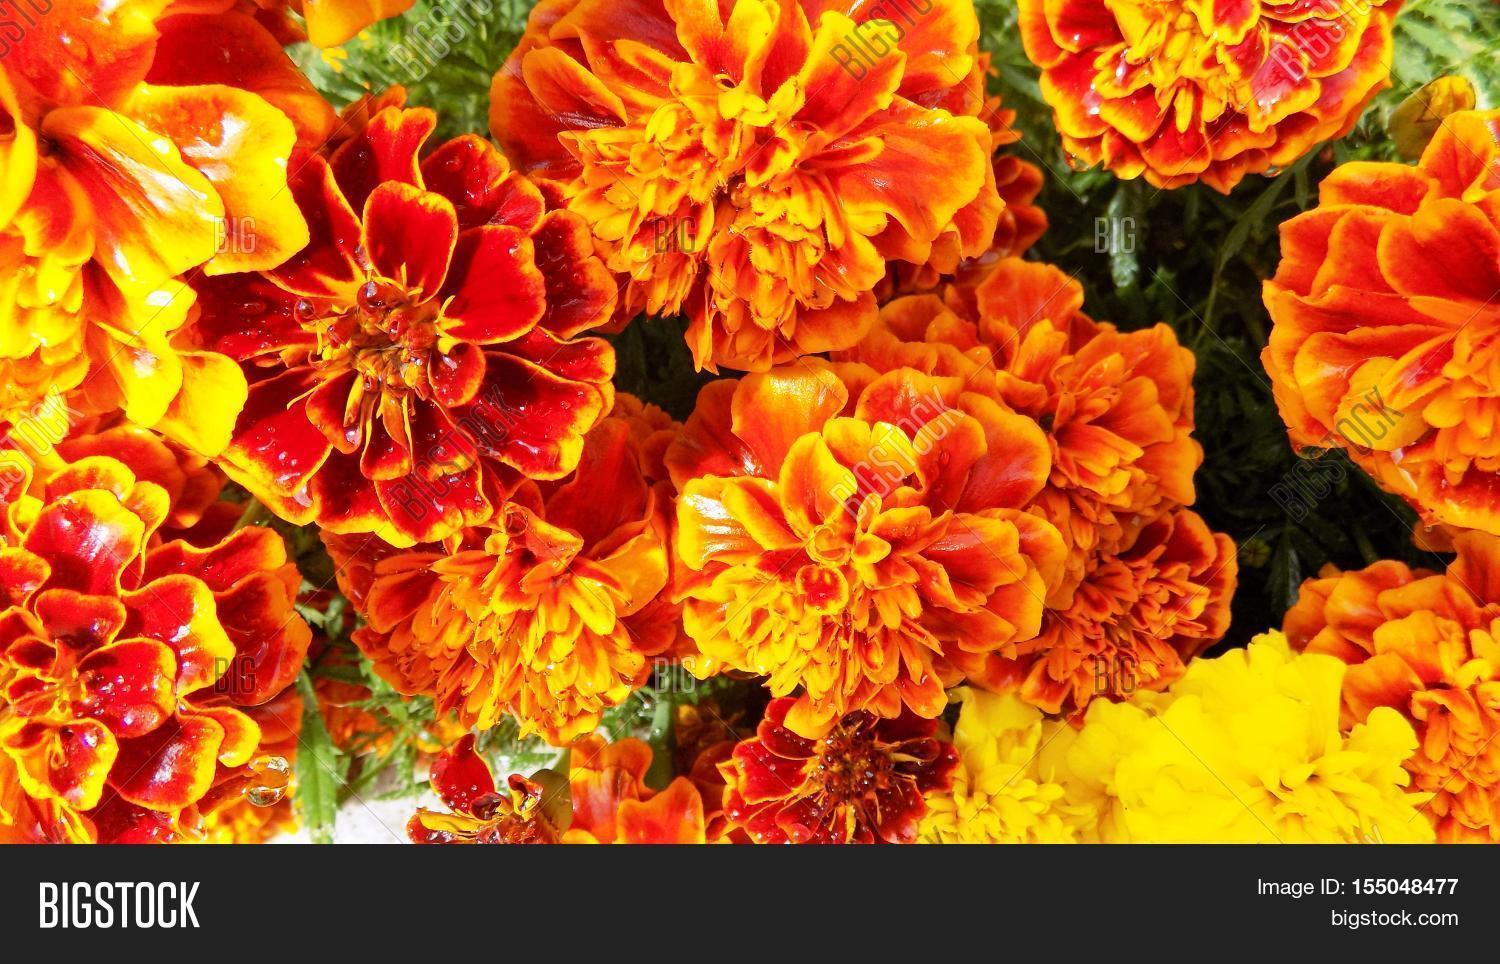 Flowers Bright Image Photo Free Trial Bigstock